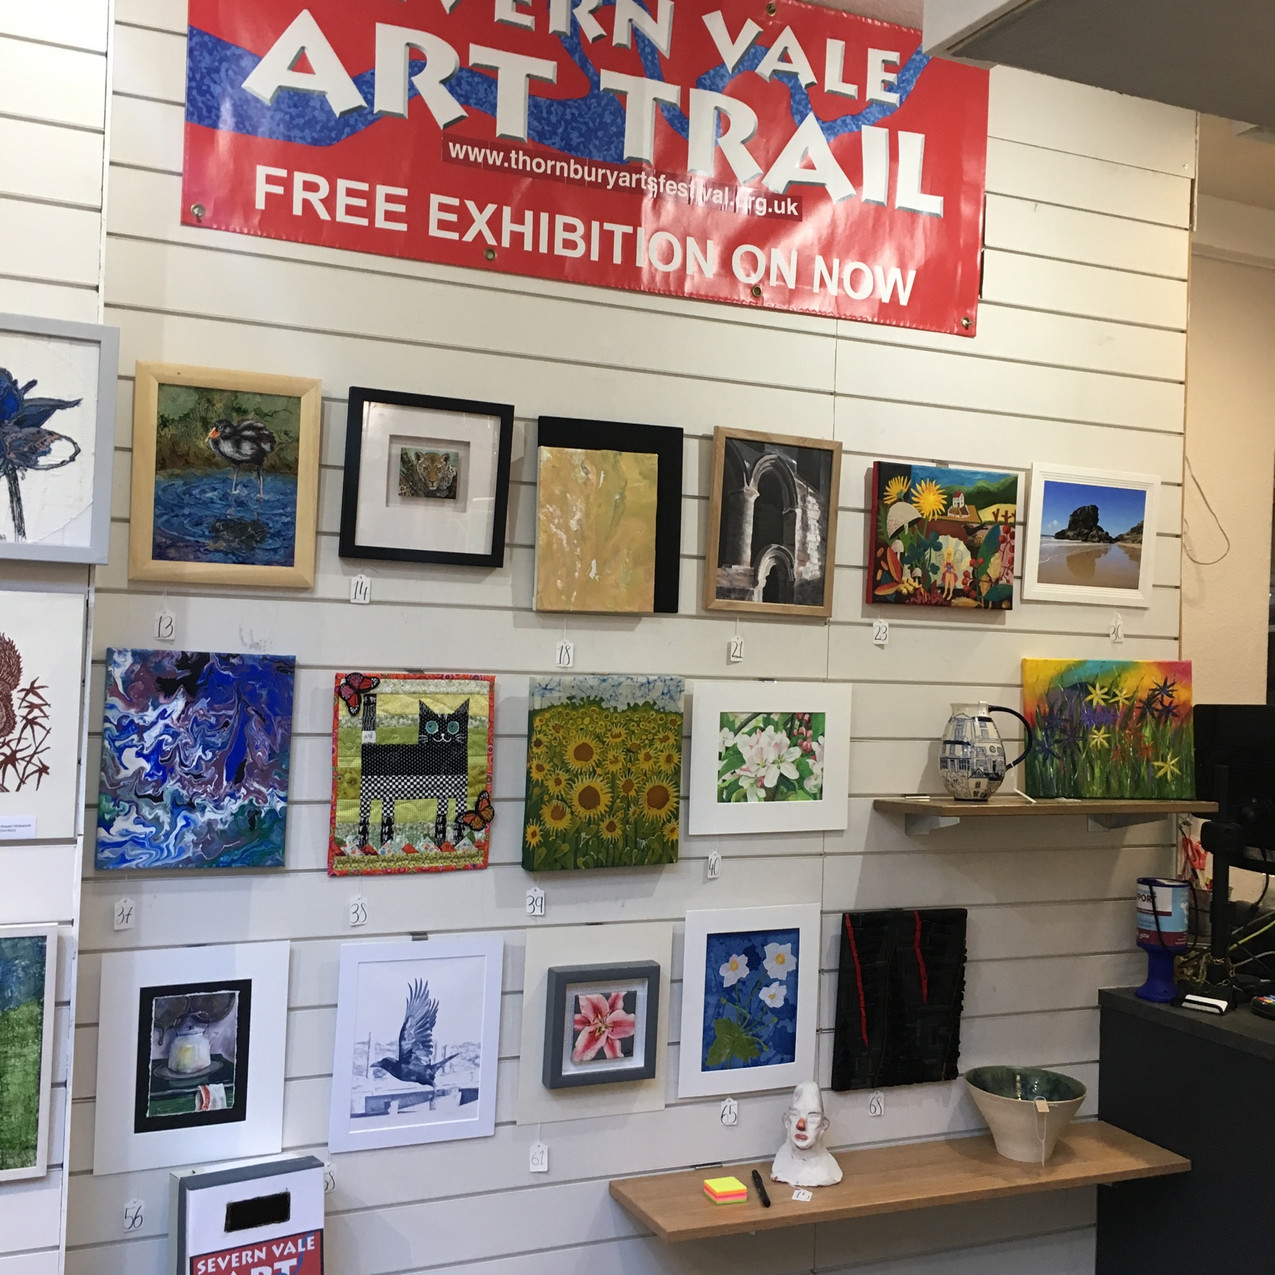 Wall of Art Trail Exhibition